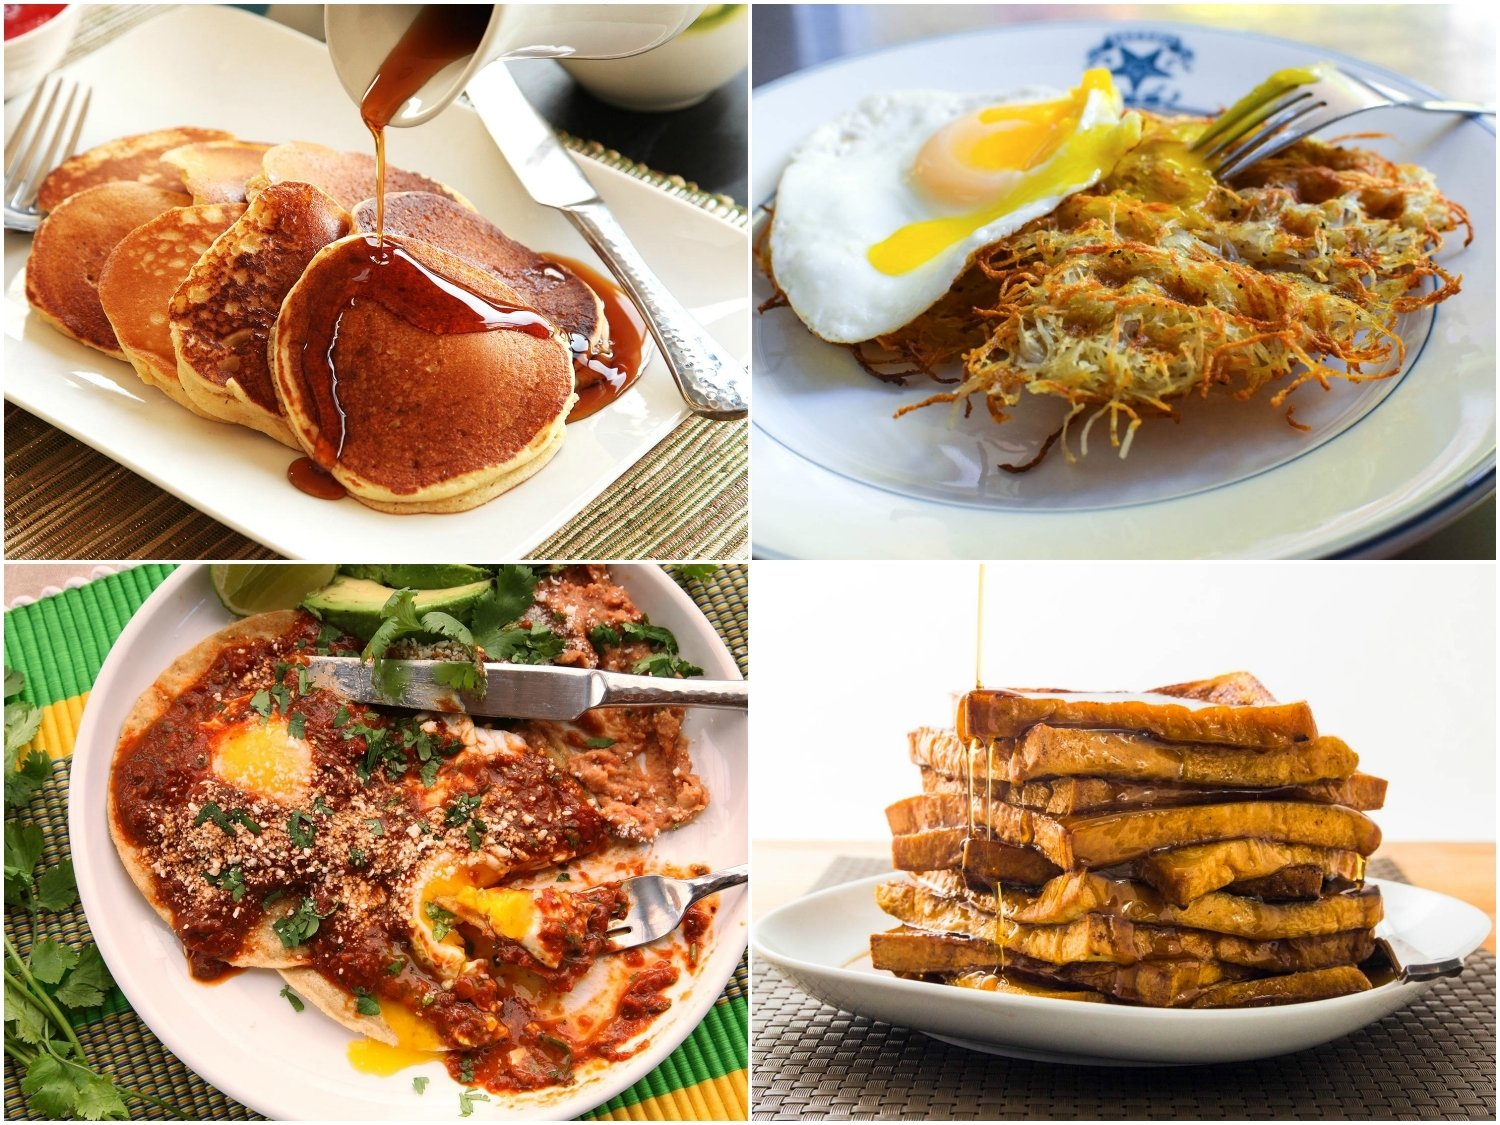 10 Awesome Luncheon Ideas For A Crowd 17 easy breakfasts to feed a crowd serious eats 13 2020